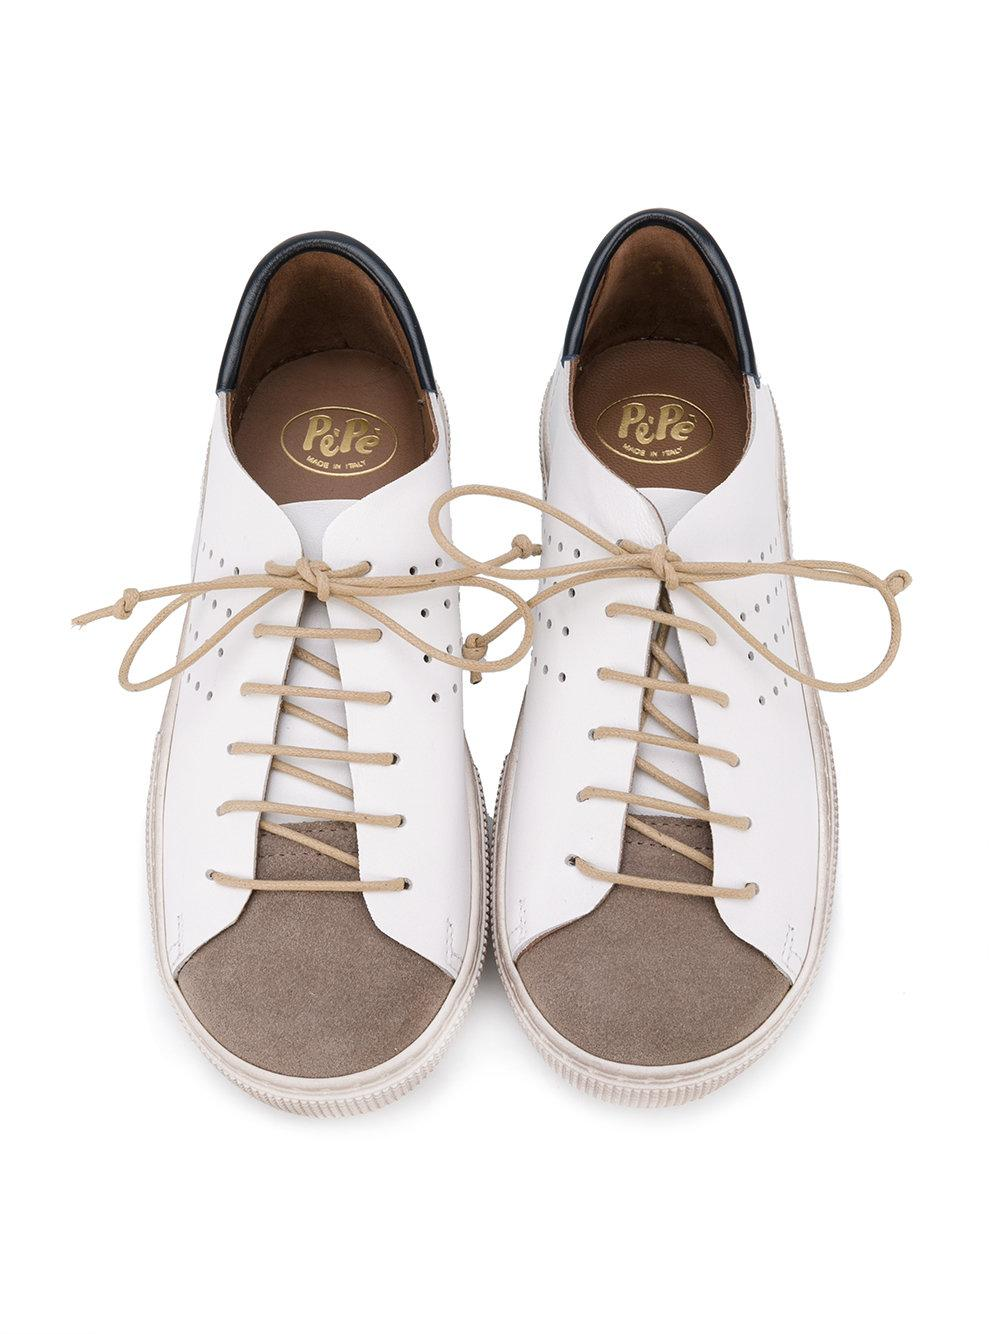 Pepe Jeans Leather Colour Panel Lace-up Sneakers in White